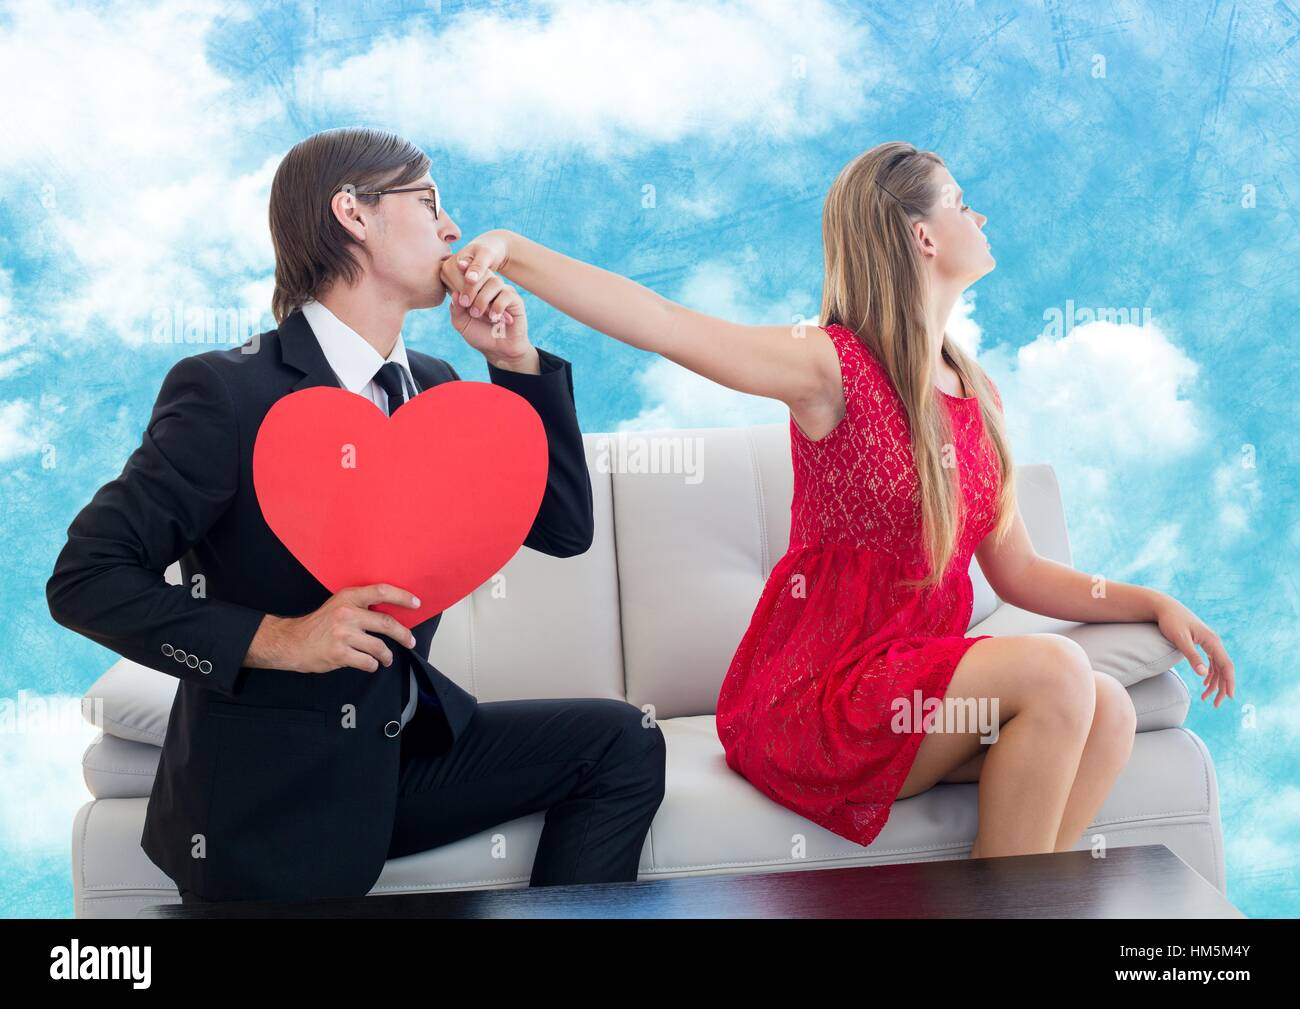 Man with red heart pleasing upset women - Stock Image